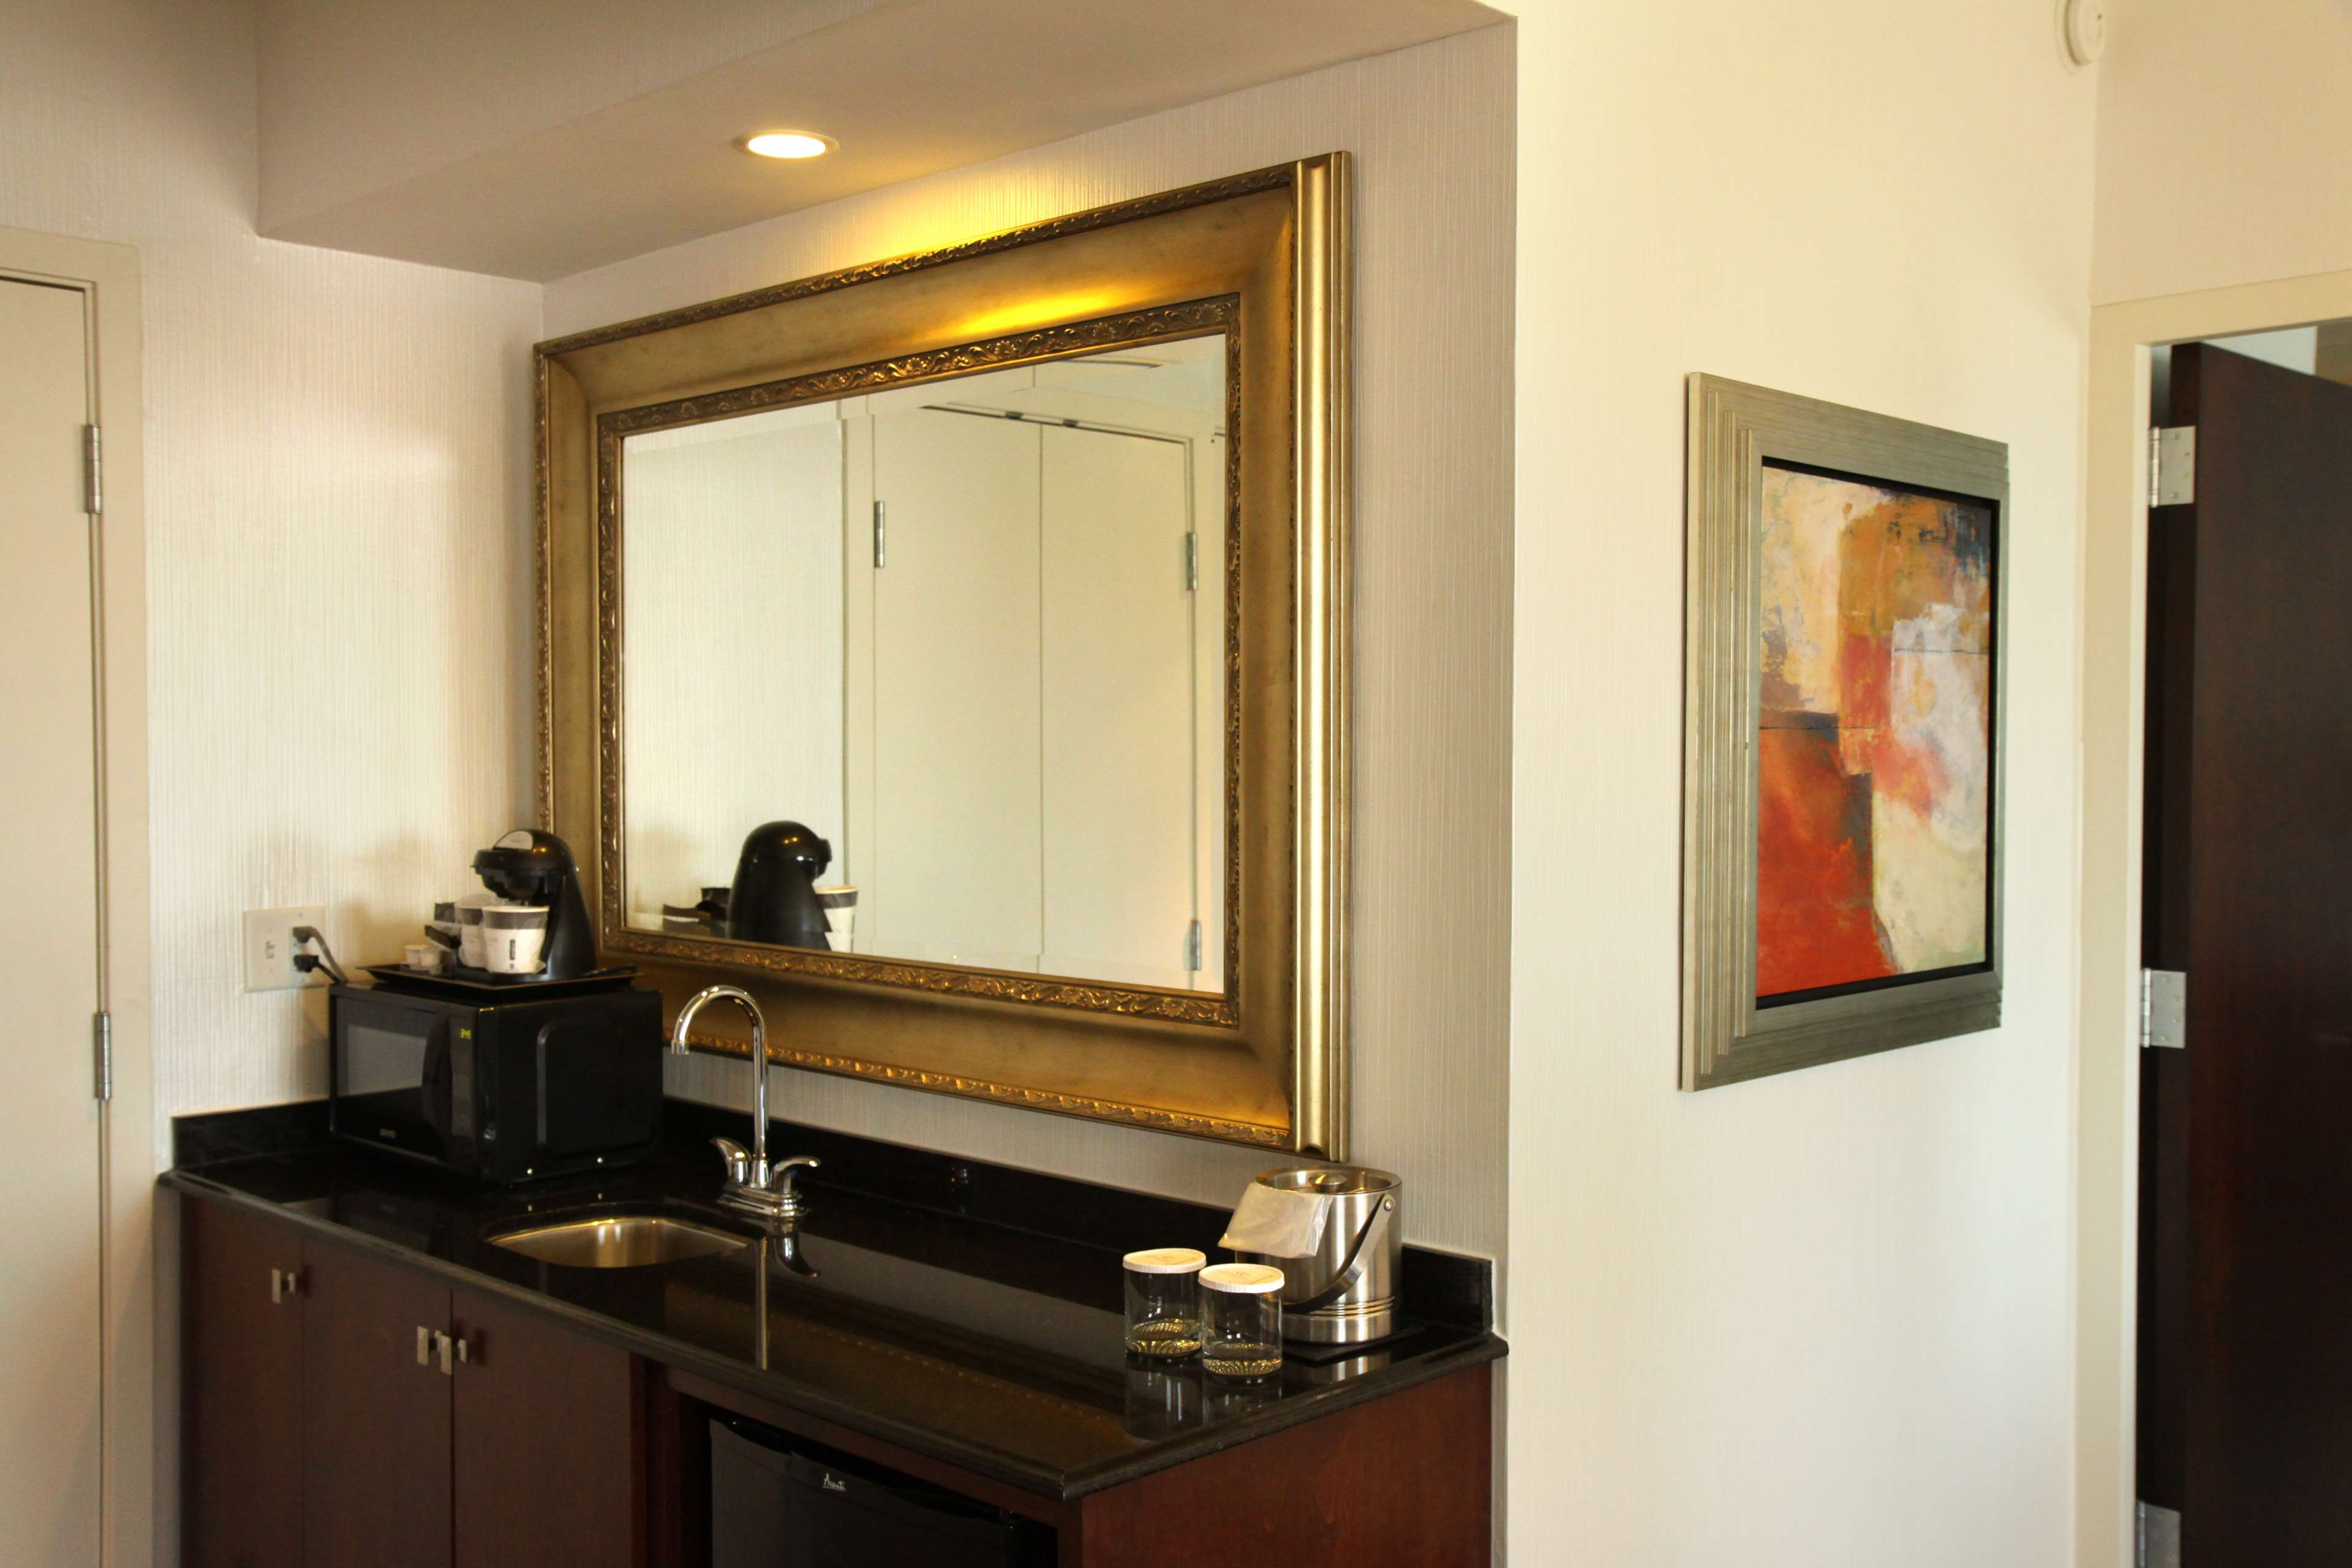 DoubleTree by Hilton Hotel Rochester - Mayo Clinic Area image 41